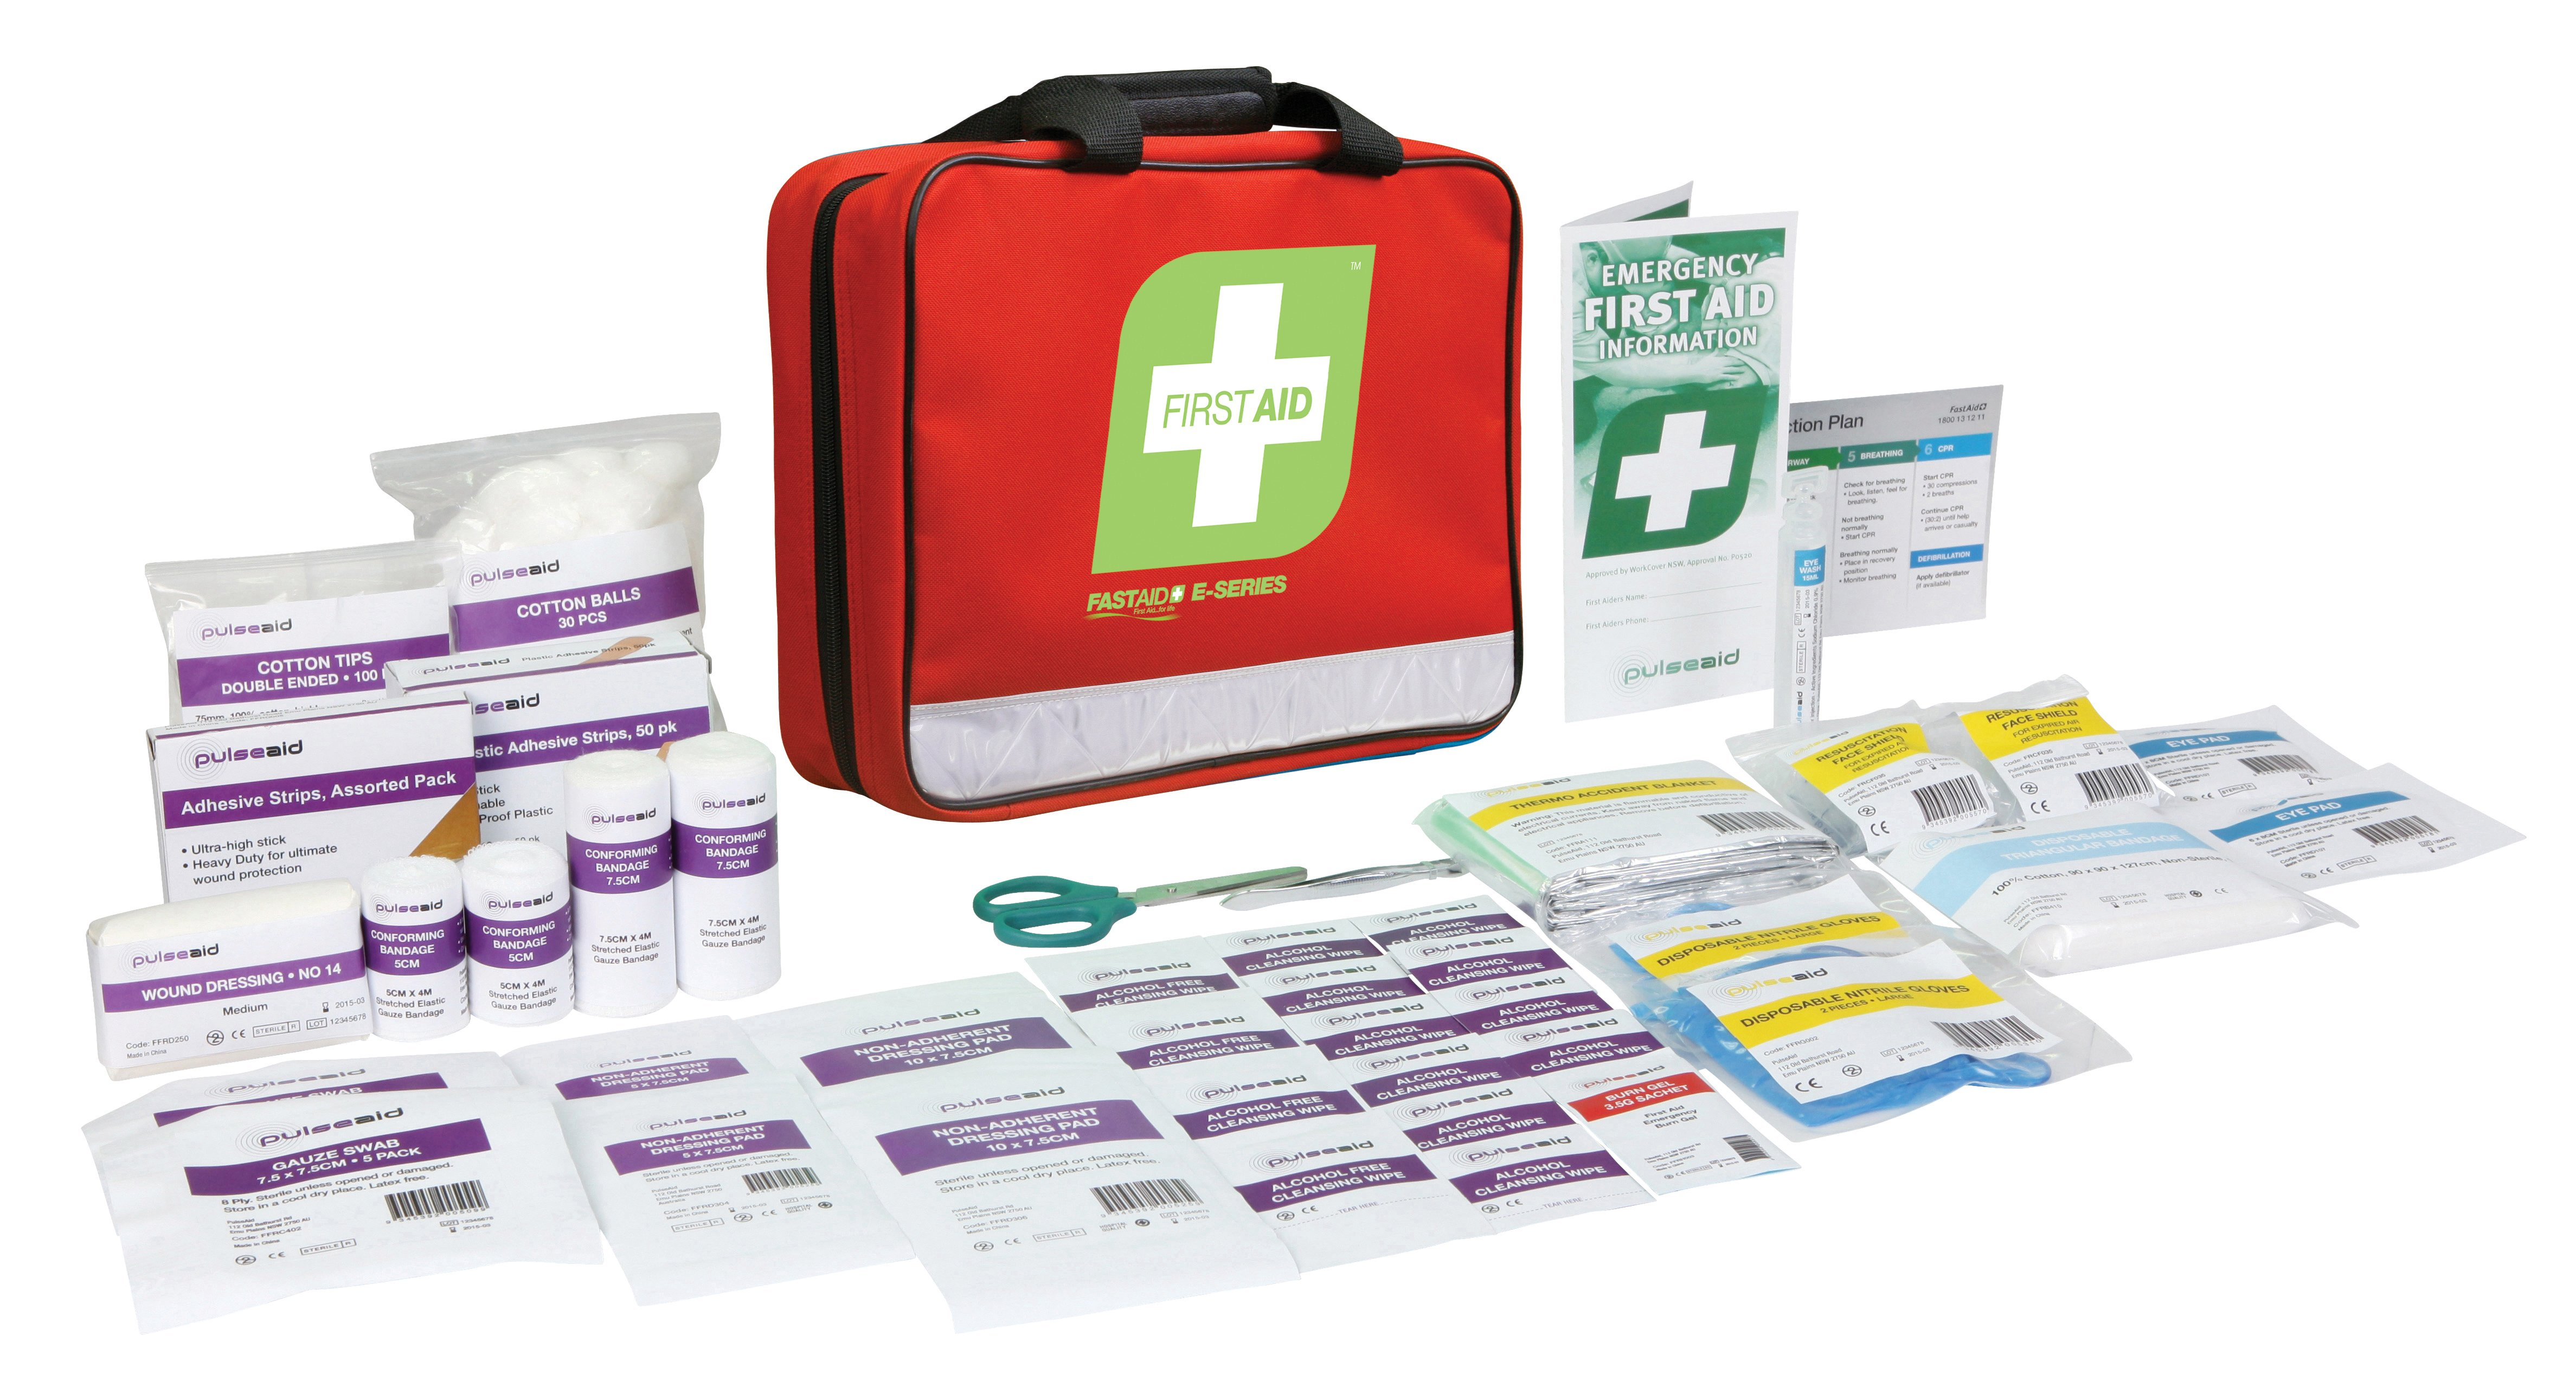 E-Series Responder First Aid Kit, Red Soft Pack